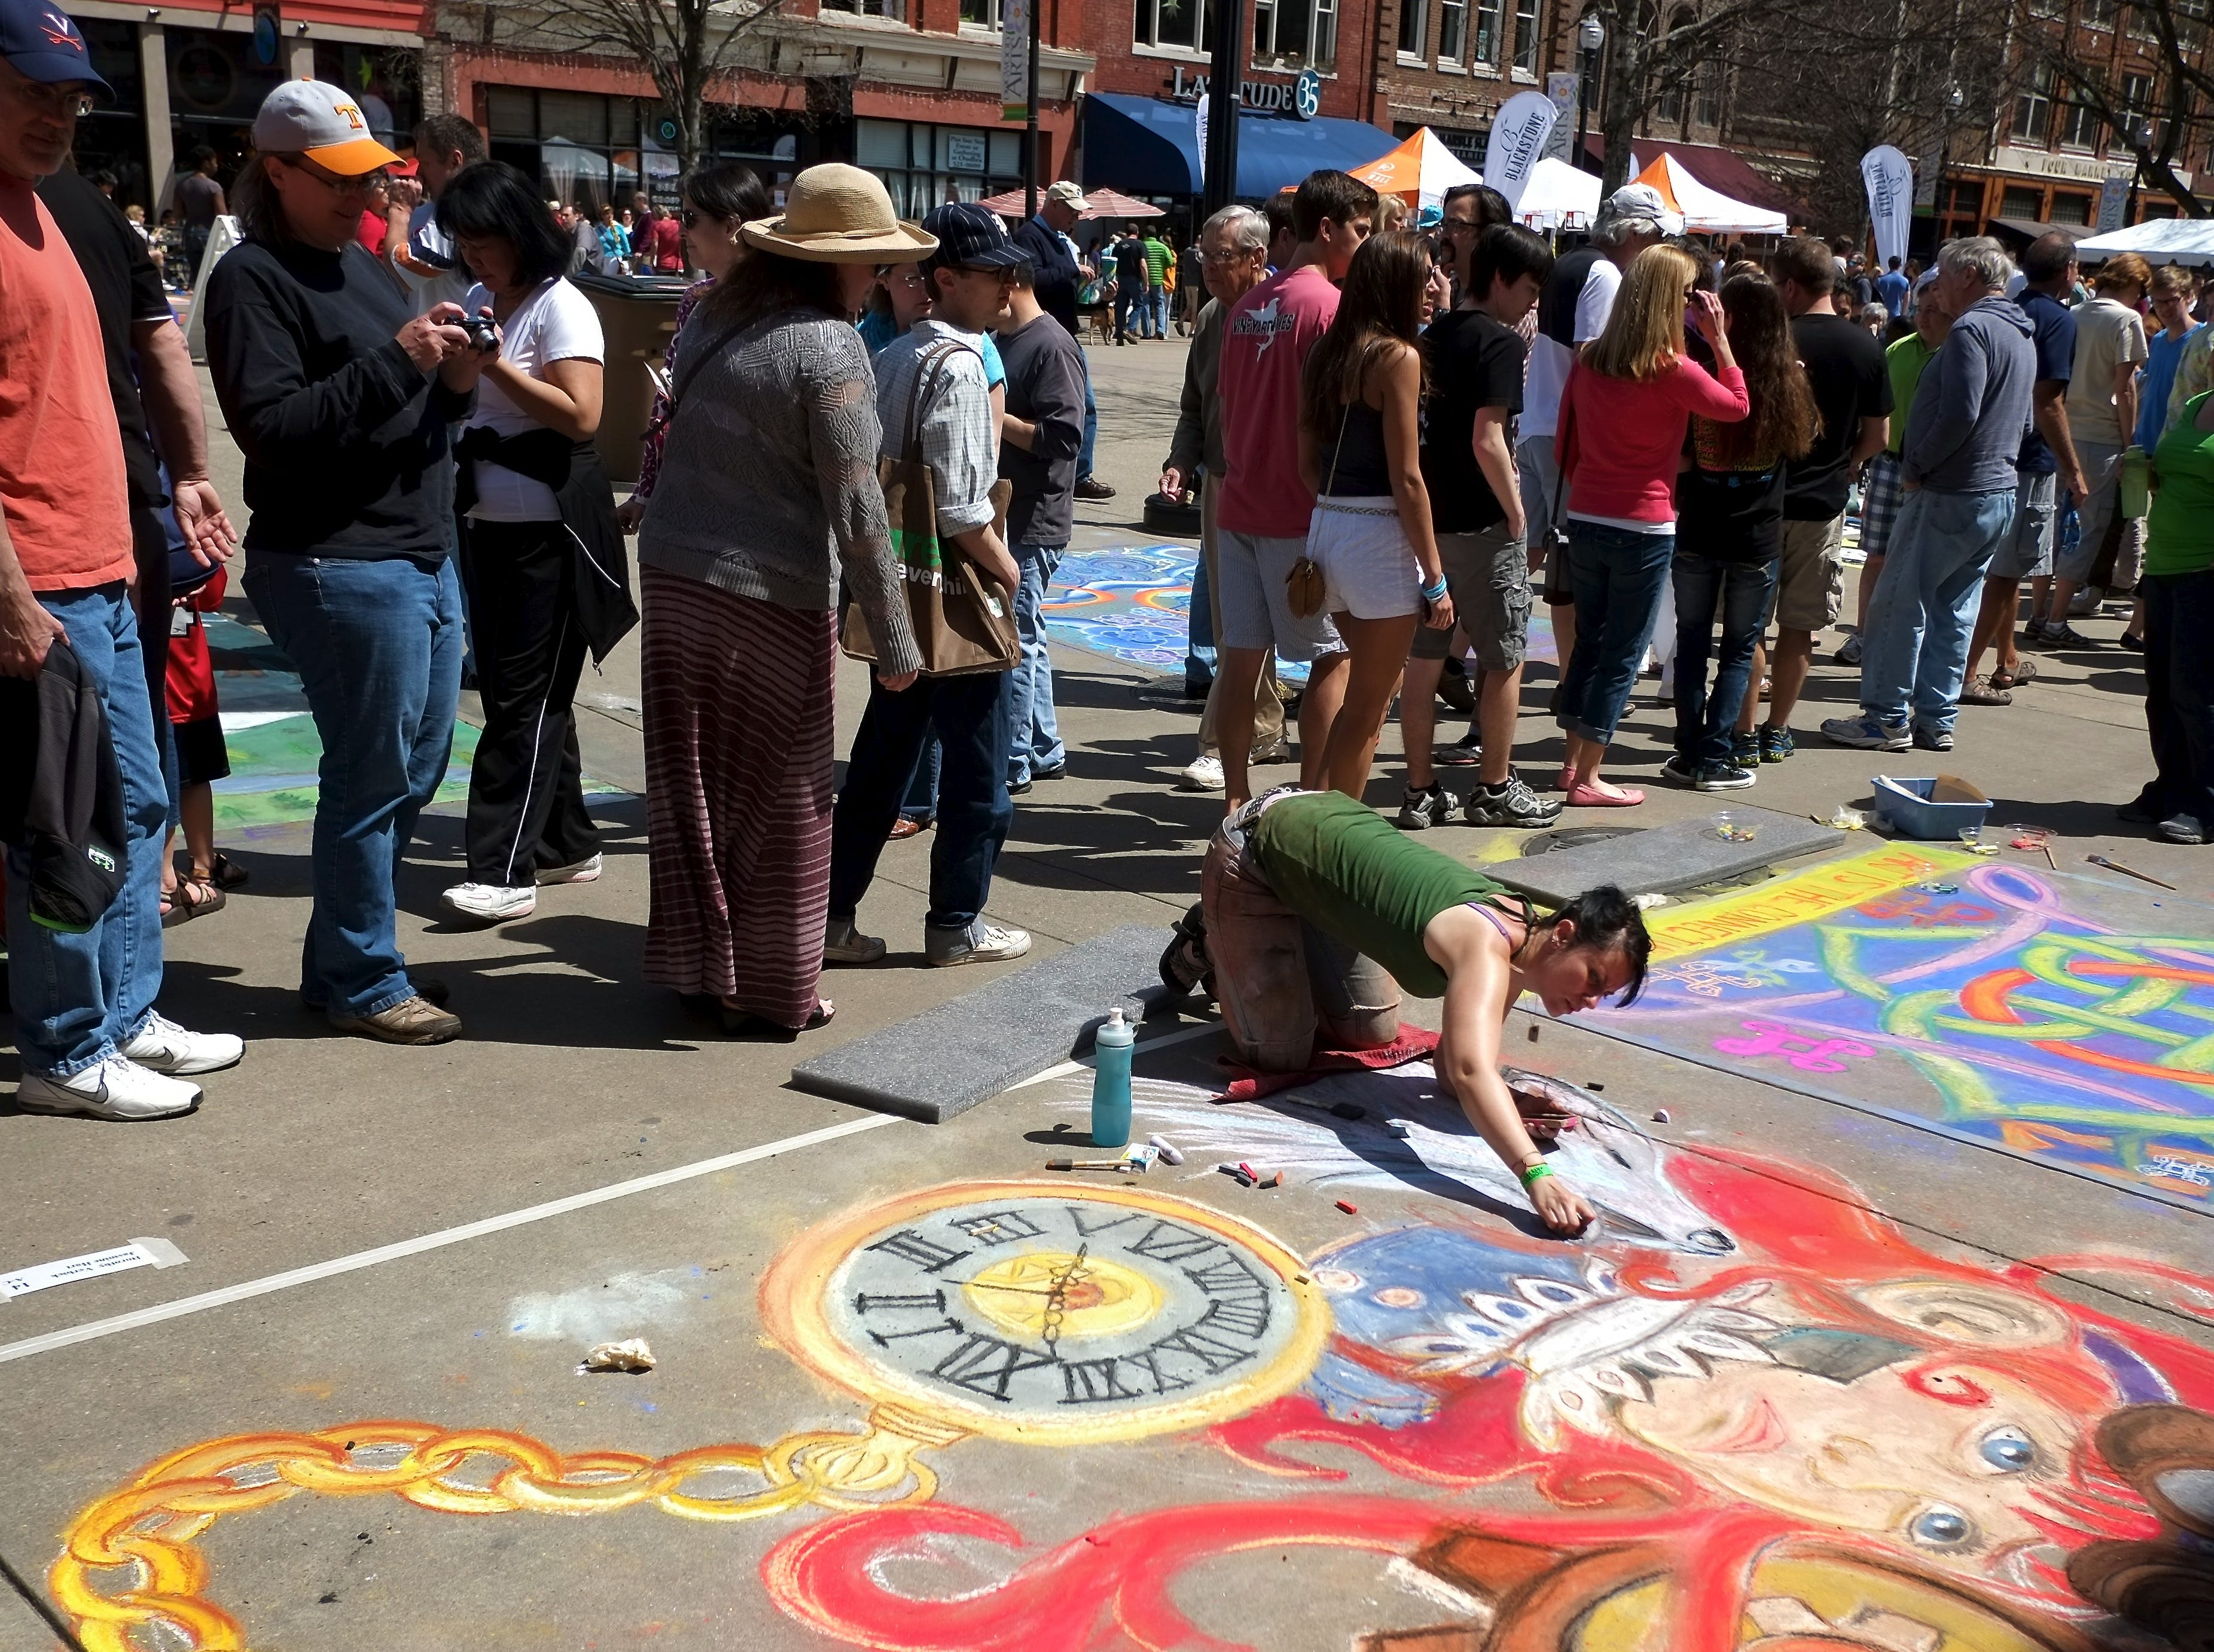 Dorothy Verbick, center front, works on a chalk drawing during the 5th annual Chalk walk on Saturday, April 6, 2013 as part of the Dogwood Arts Festival on Market Square. 100 chalk drawings were created by more than 150 artists. (Chad Greene/Special to the News Sentinel)